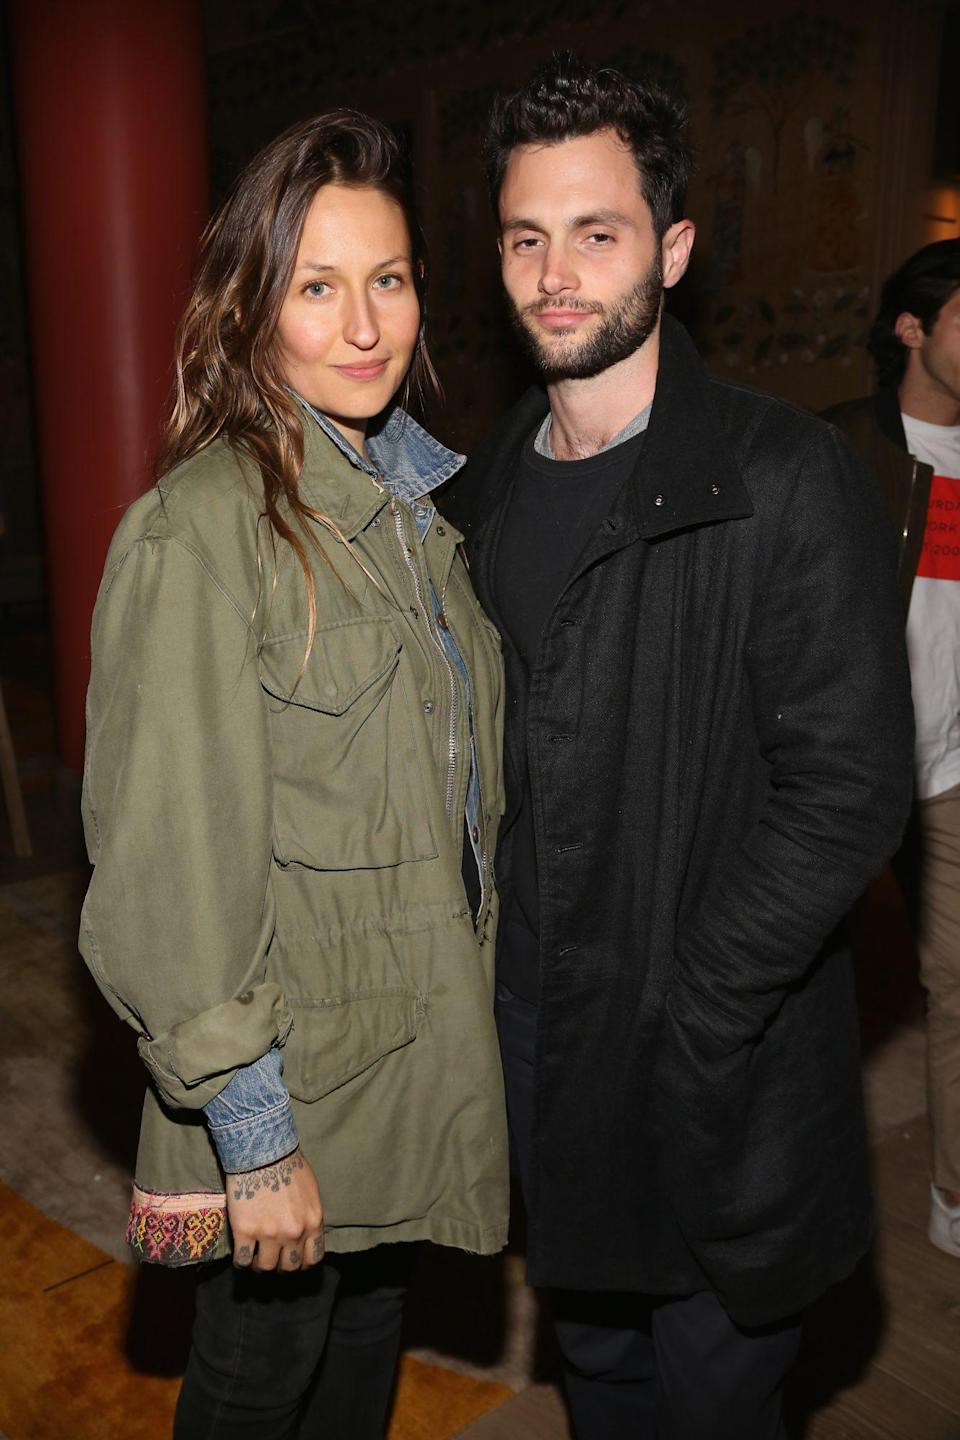 "<p>Domino Kirke announced that she and her husband, Penn Badgley, welcomed a baby boy together. In an <a href=""https://www.instagram.com/p/CFX6apxFFeR/?utm_source=ig_embed"" rel=""nofollow noopener"" target=""_blank"" data-ylk=""slk:Instagram"" class=""link rapid-noclick-resp"">Instagram</a> post, Kirke shared a photo of her placenta.</p> <p>""His heart shaped home,"" she wrote.</p>"